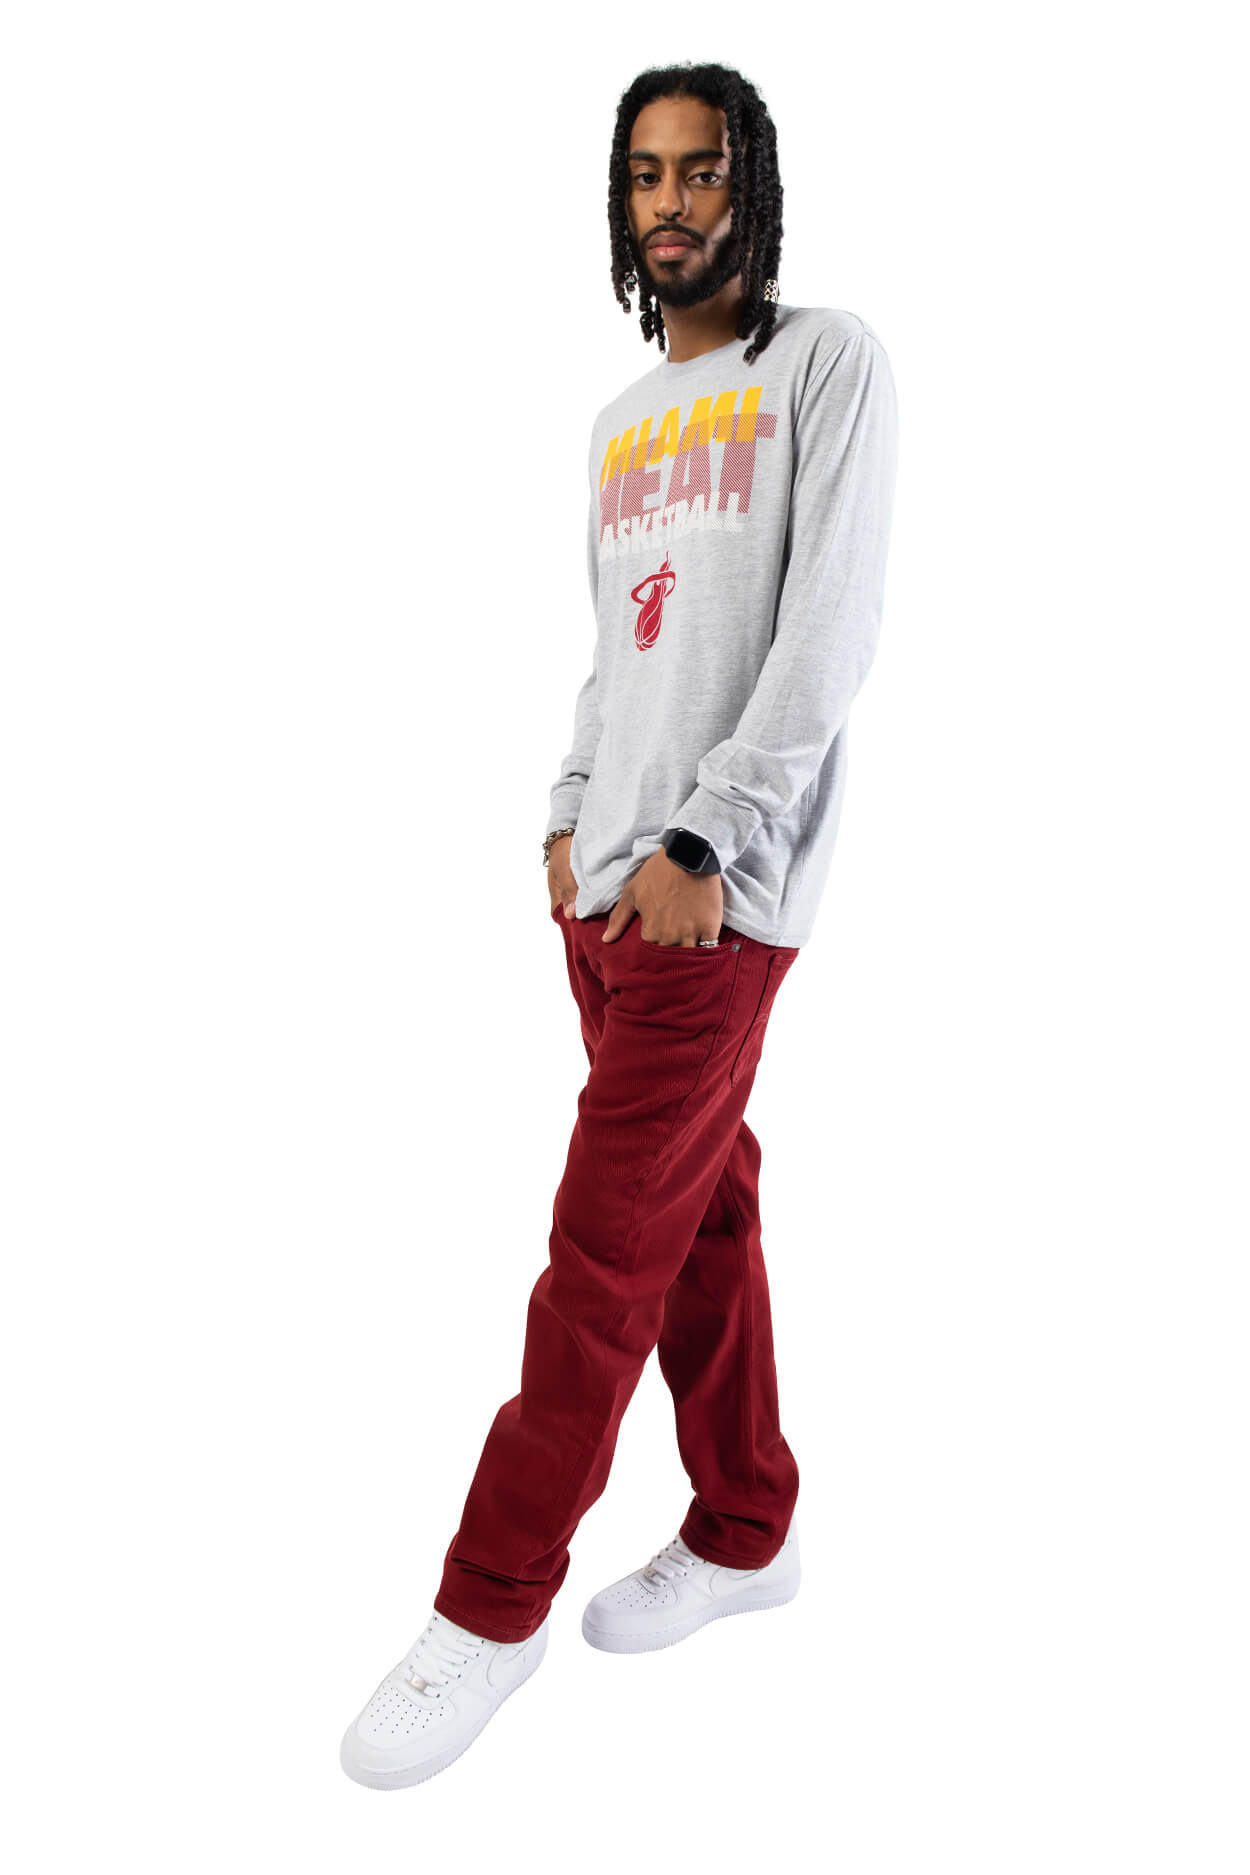 NBA Miami Heat Men's Long Sleeve Pullover|Miami Heat